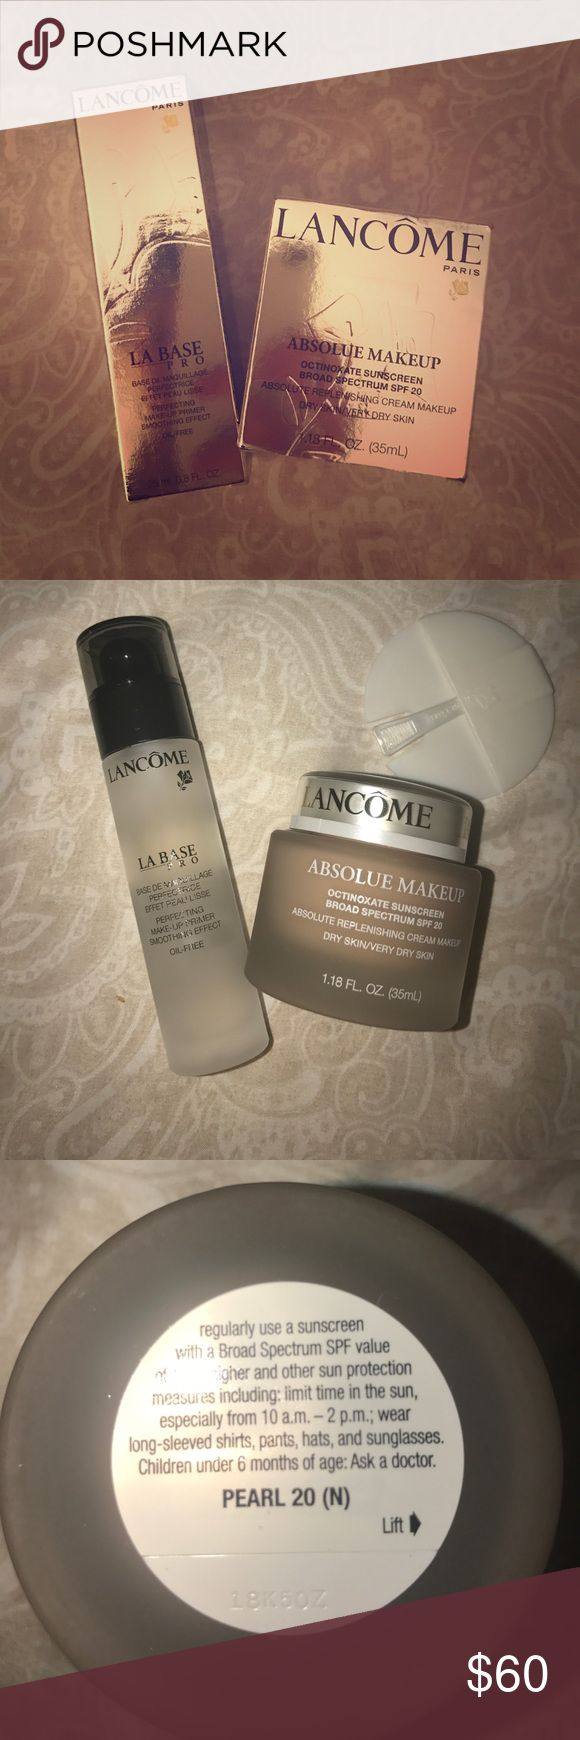 Lancome Foundation Lancome - La Base Pro - Silicone base primer & Lancome Absolue Full Coverage Cream Makeup !! BOTH ARE FULL SIZE!!! BRAND NEW NEVER USED IN GREAT CONDITION!!! Lancome Makeup Foundation